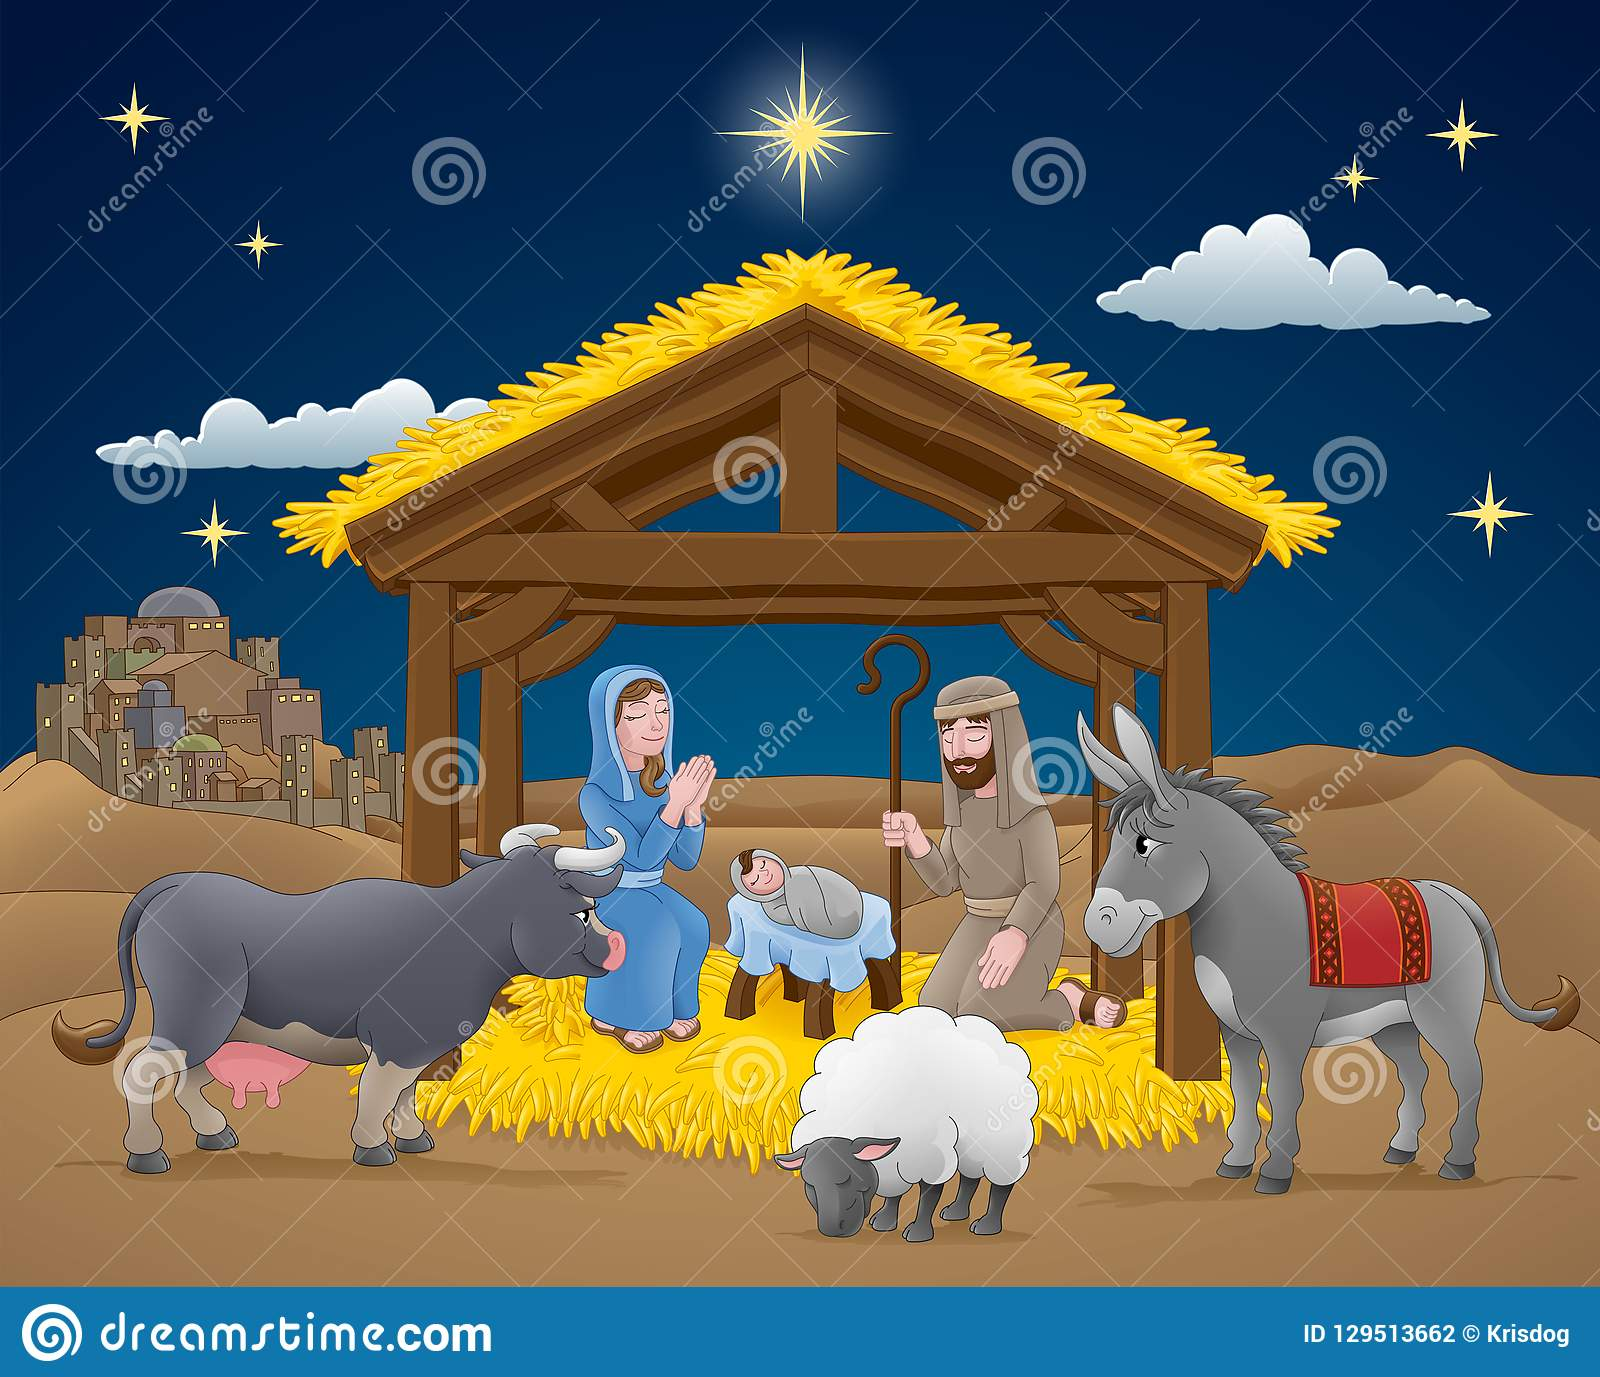 Christmas Scene Drawing.Cartoon Nativity Christmas Scene Stock Vector Illustration